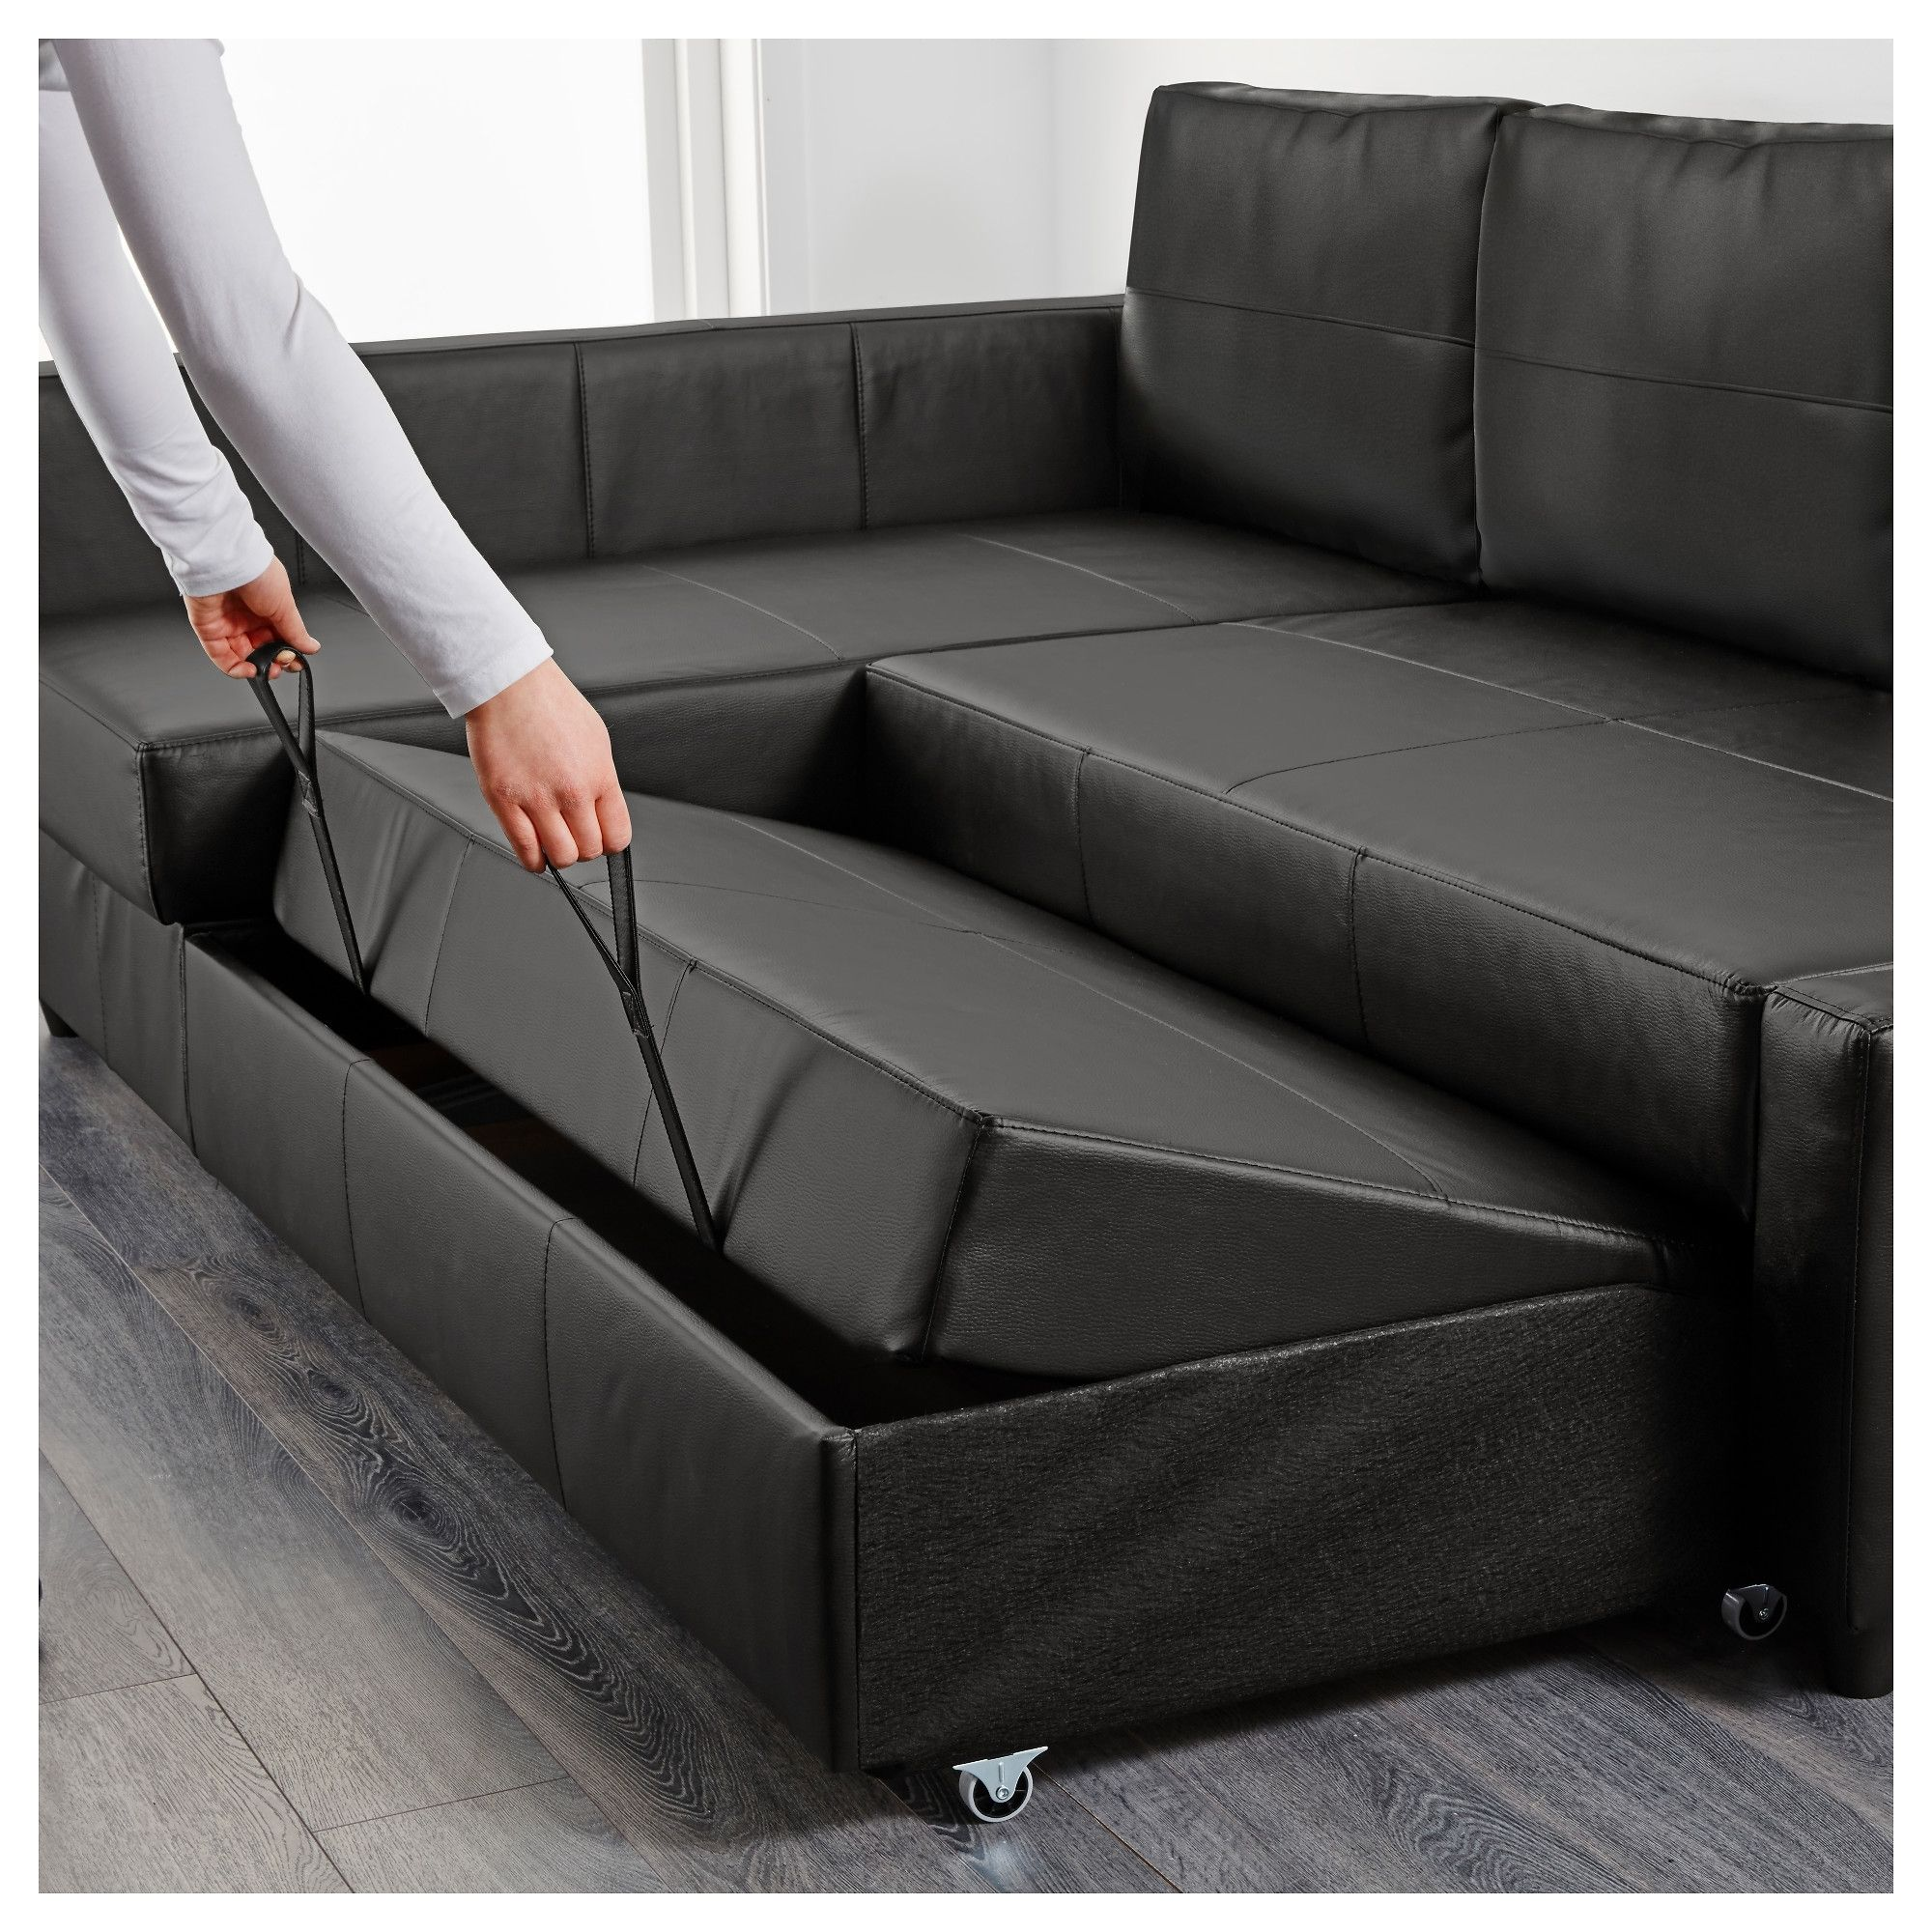 10 Inspirations Leather Sofas With Storage Sofa Ideas